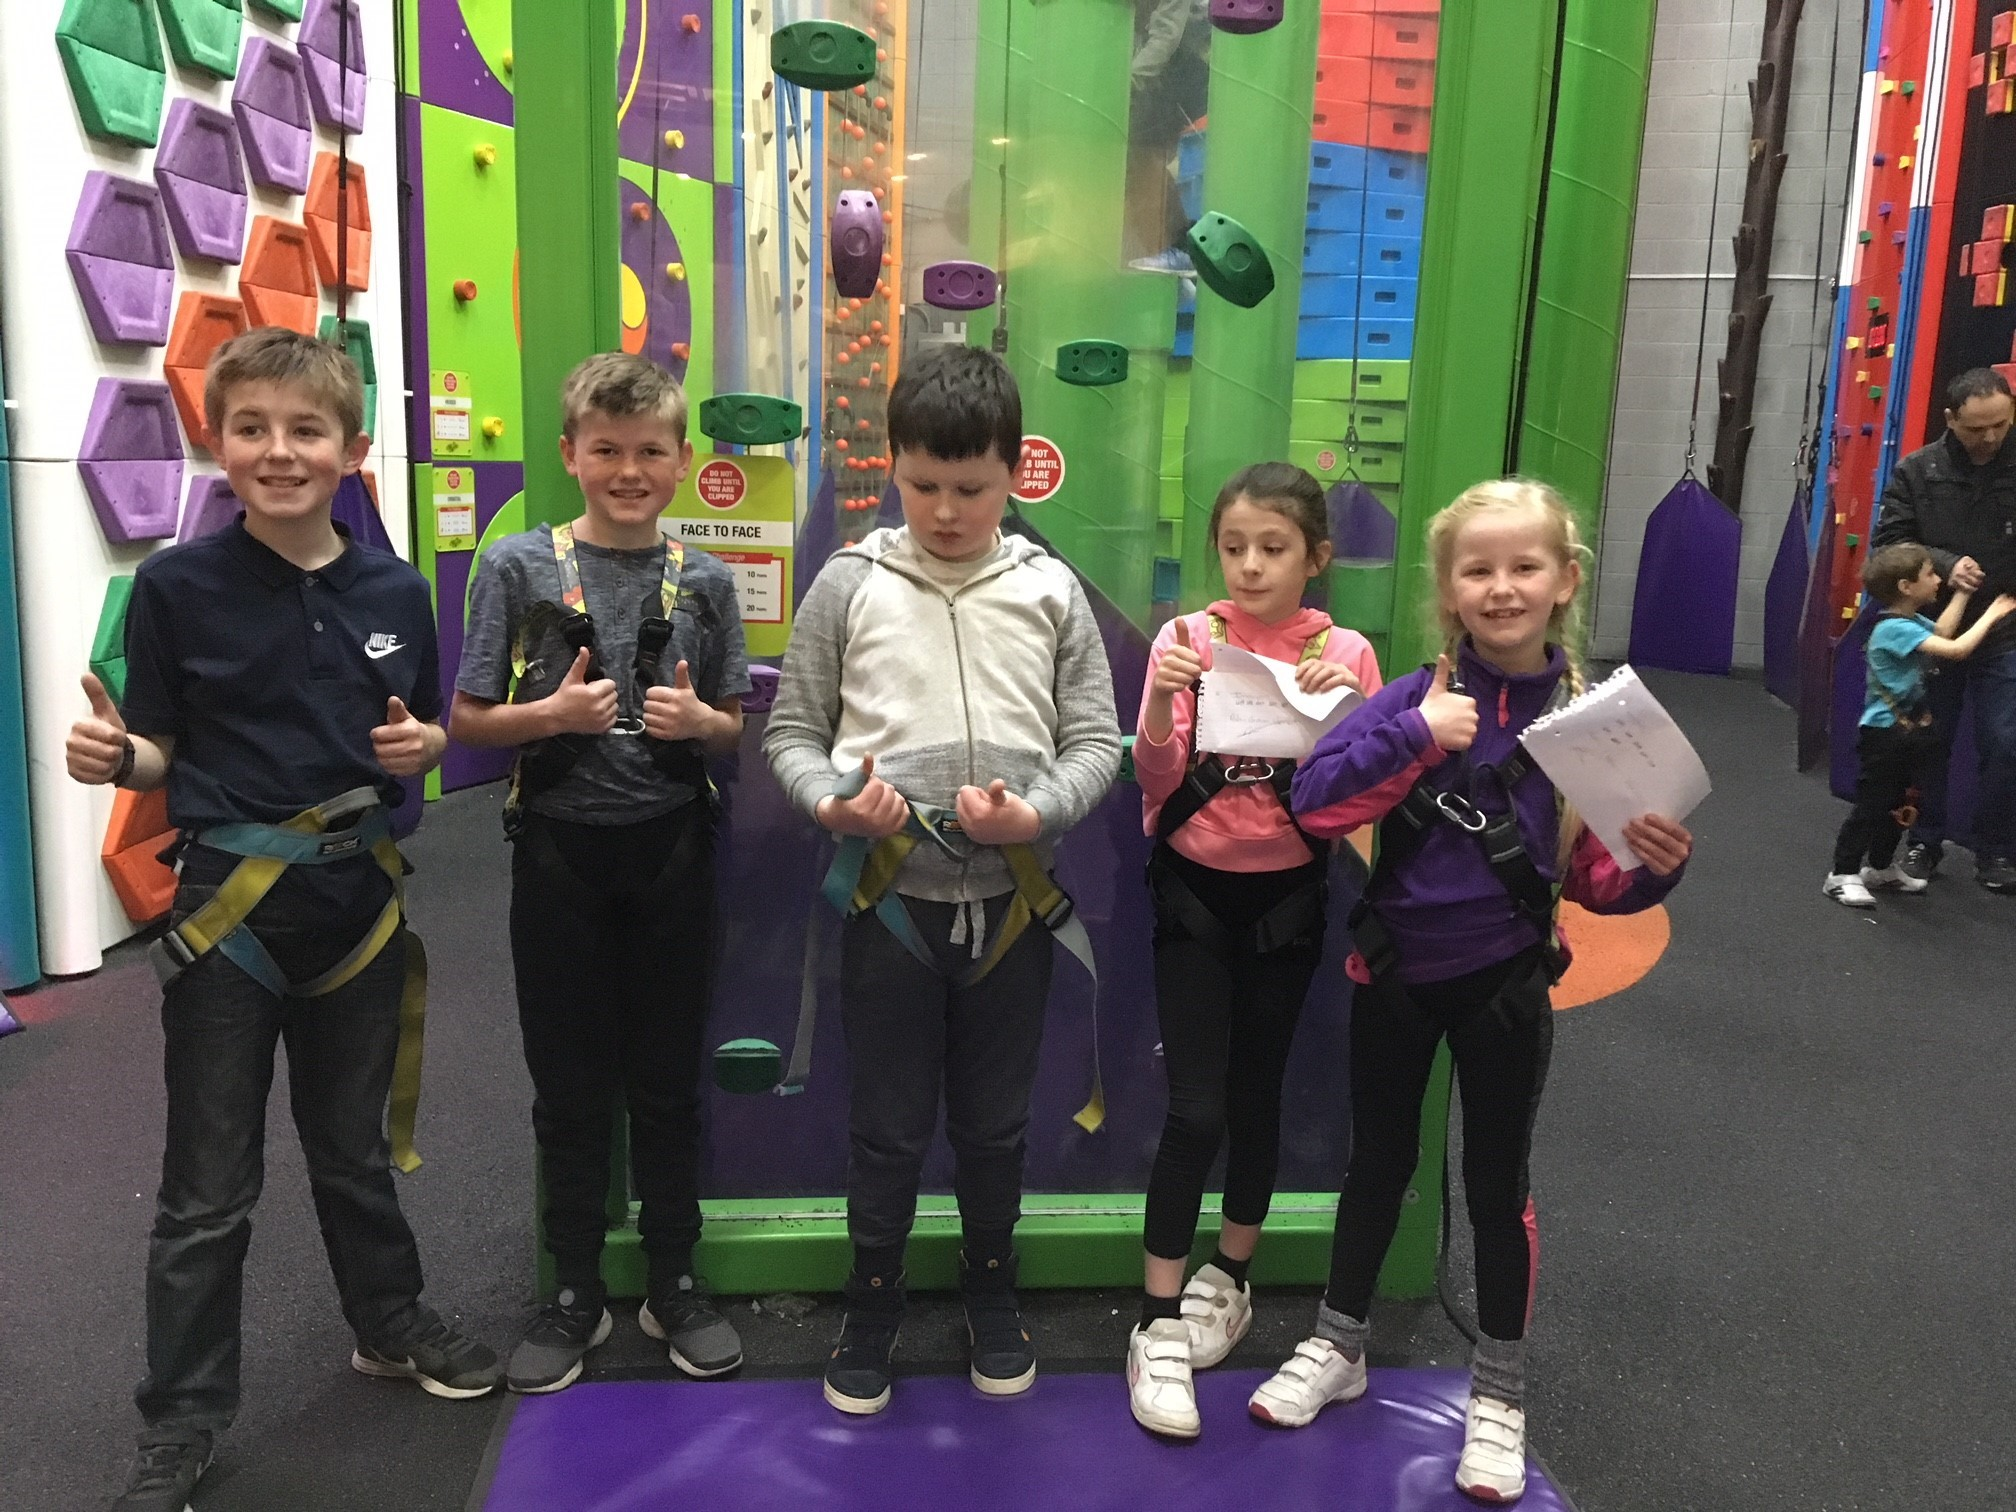 The youngsters are pictured during the charity event at Clip'nClimb Ilkley